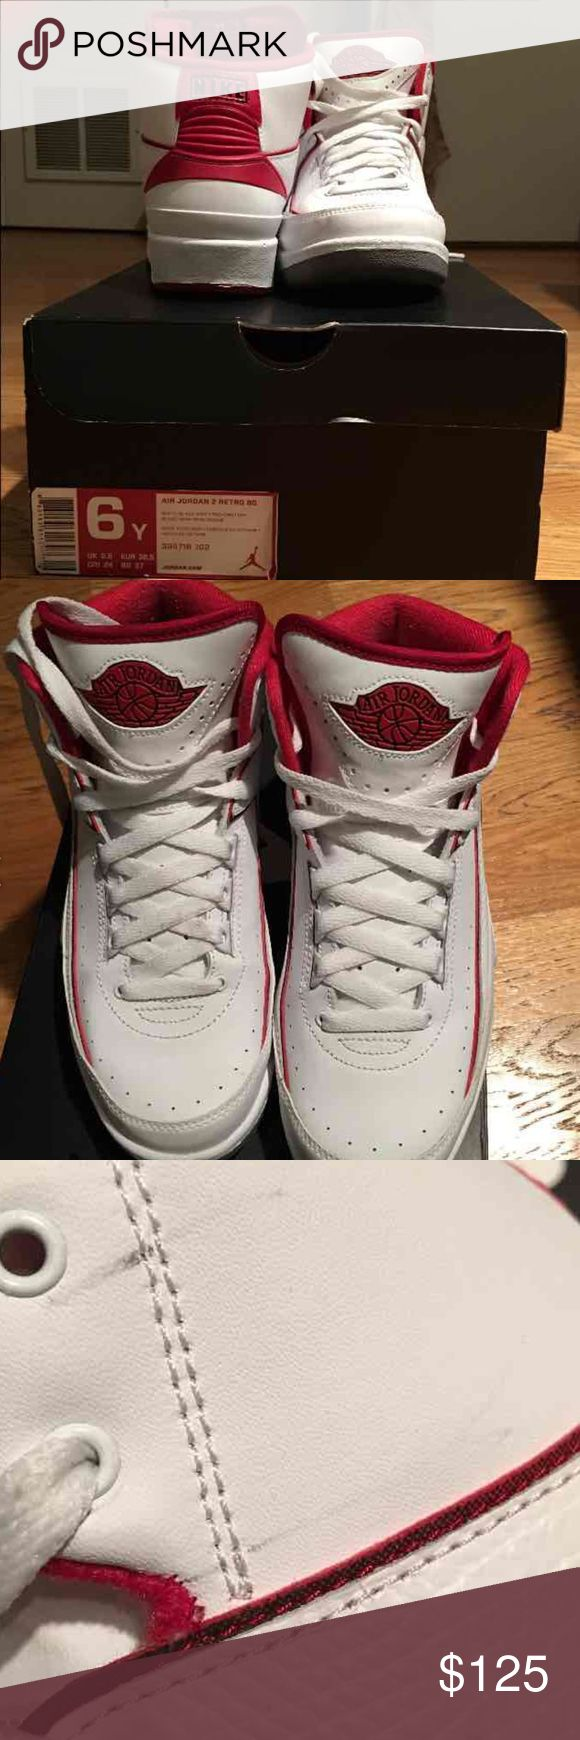 Jordan Retro 2s SIZE 6 YOUTH Jordan Retro 2 White And Varsity Red! These Are A SIZE 6 YOUTH!!!! There Are Little Marks The Left Side Of The Left Shoe That Can More Than Likely Be Removed, And A Spot On The Right Shoe Lace That Can Be Washed Out. I Only Worse These 3 Times. NO TRADES!! Jordan Shoes Sneakers